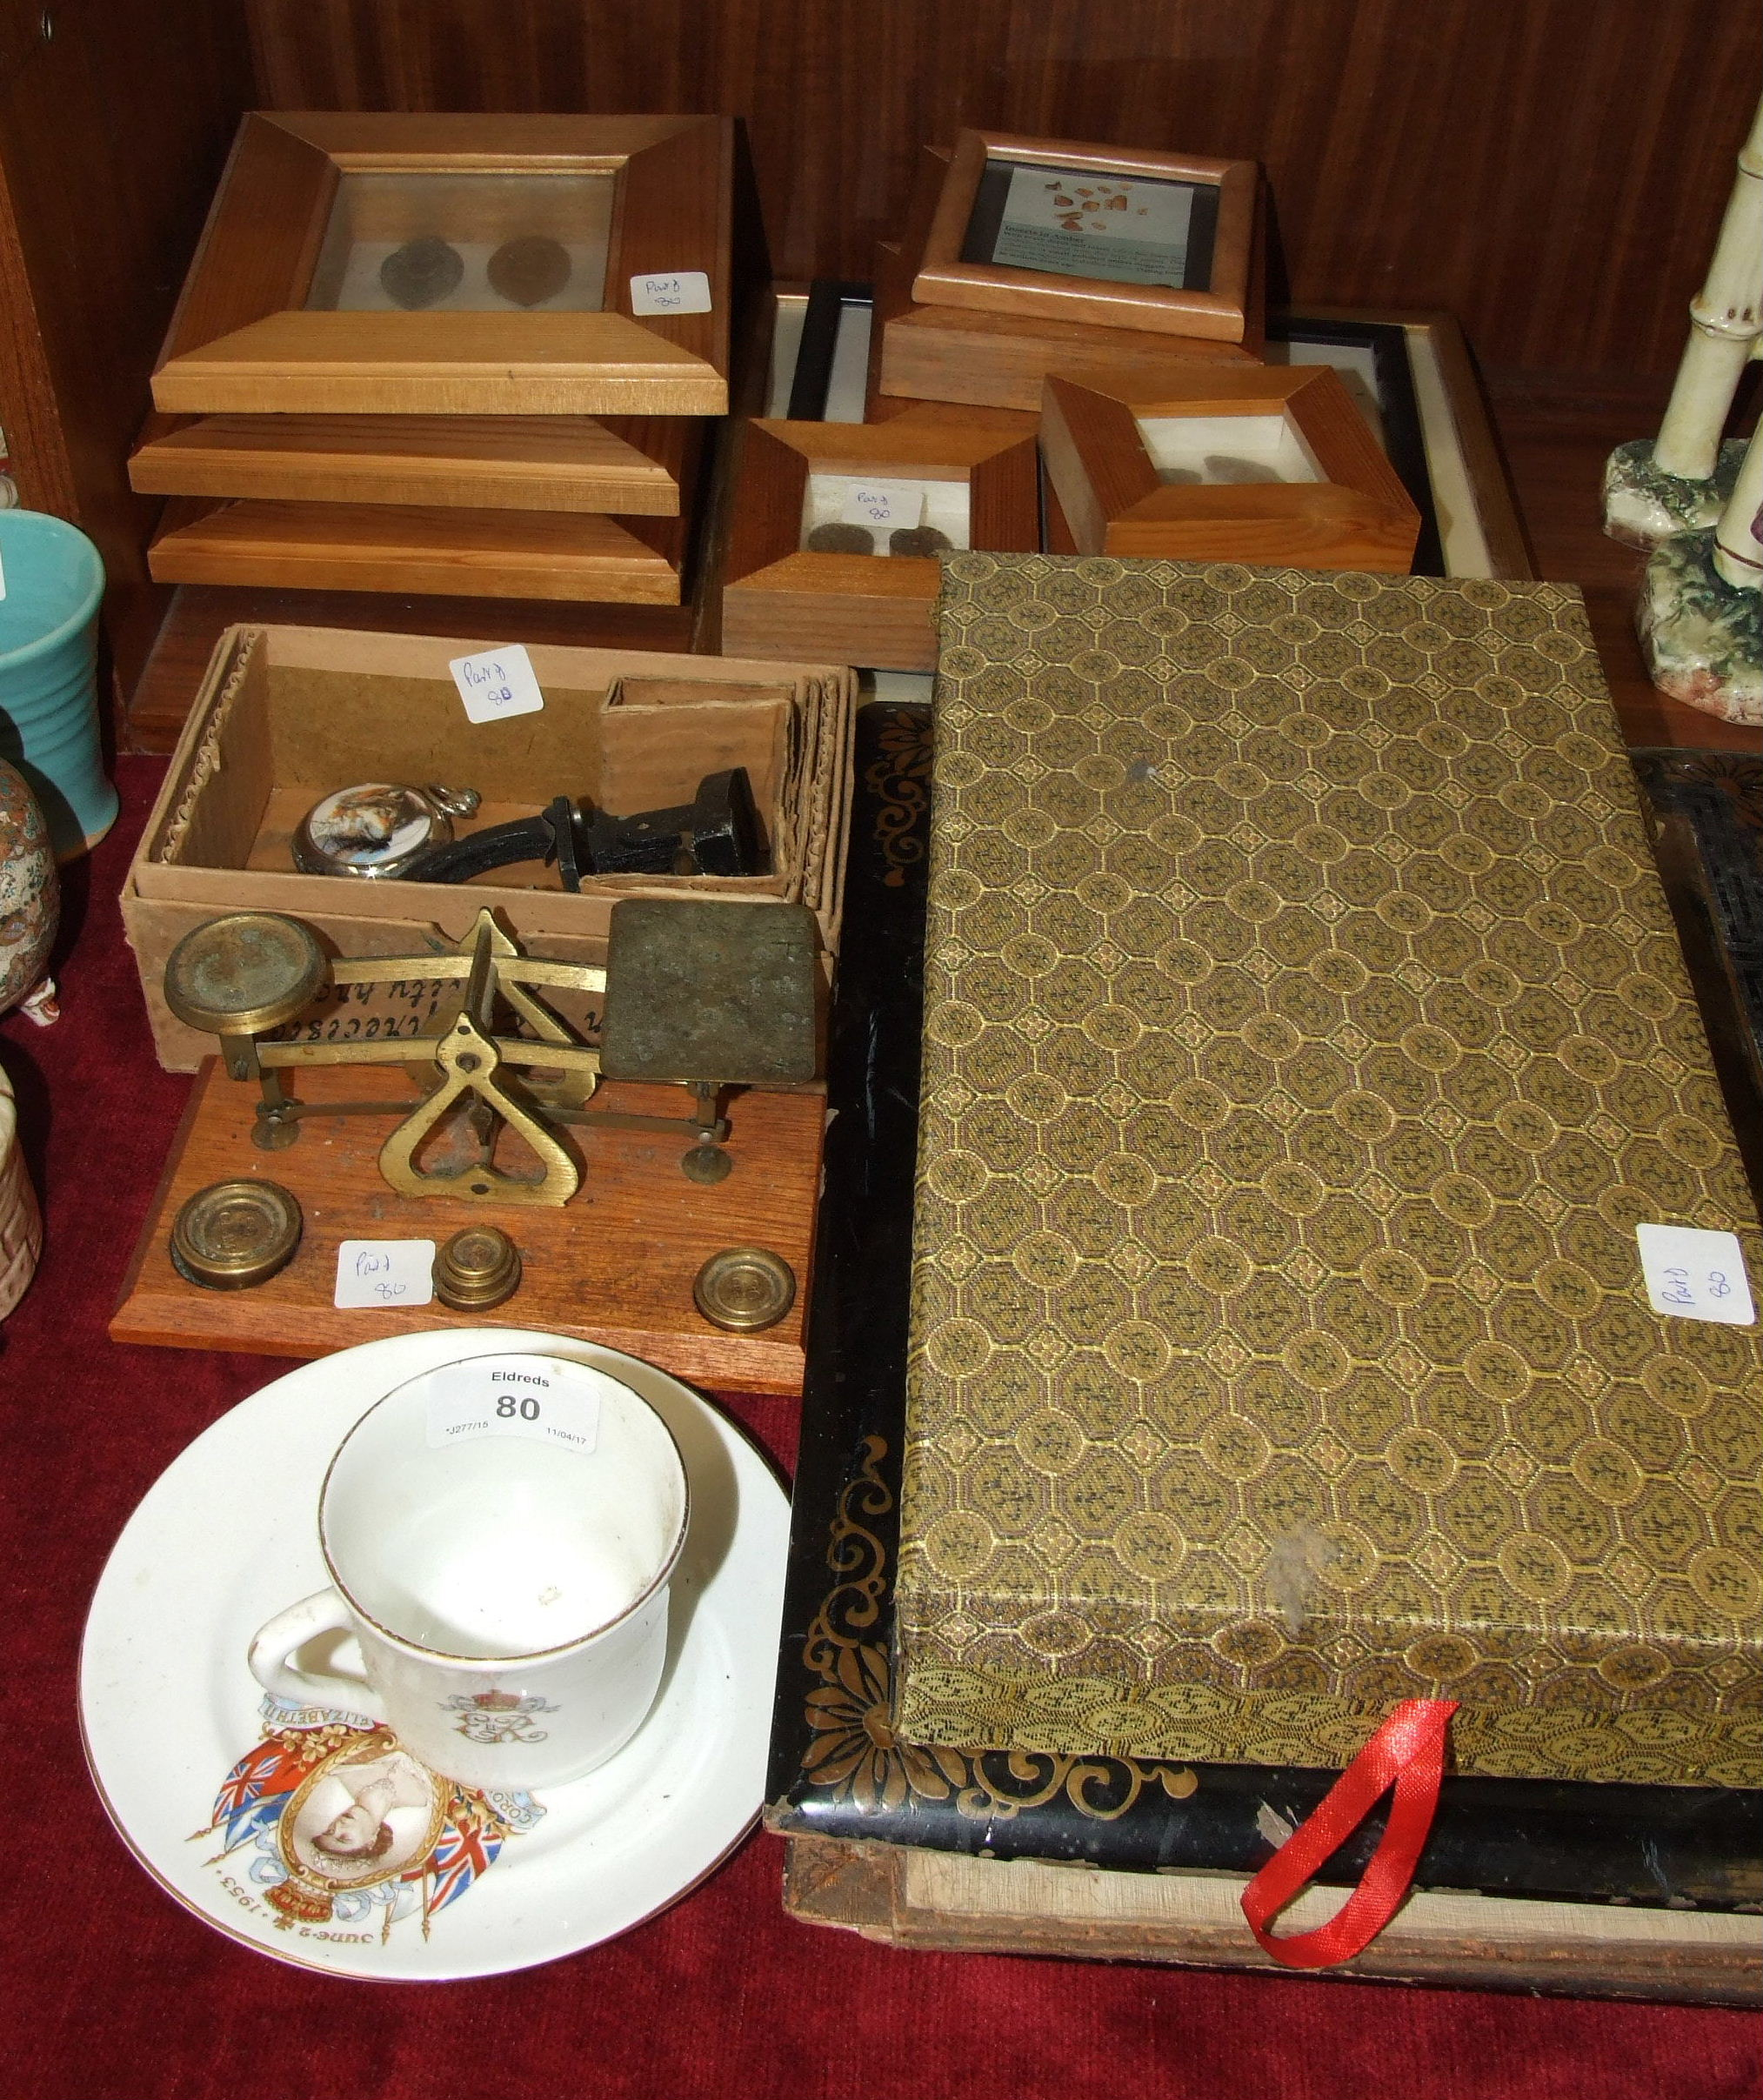 Lot 80 - A set of postal scales and weights various framed relics including prehistoric shark teeth,